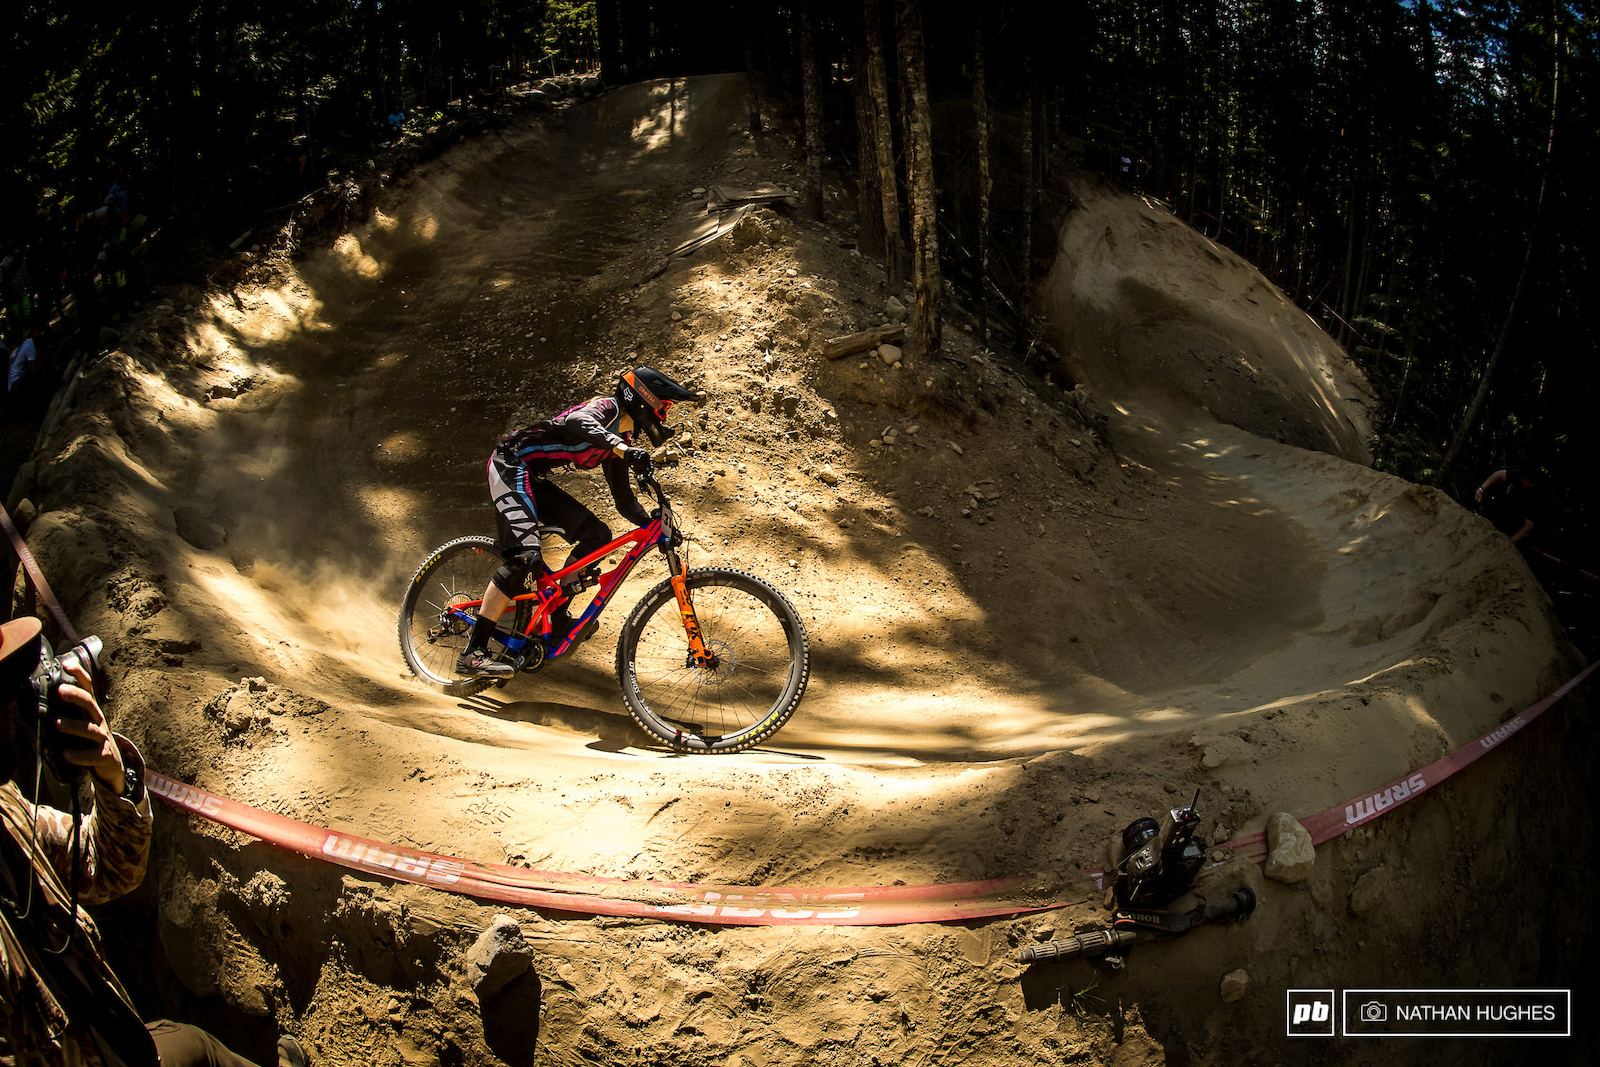 Clare Buchar flying through the giant berms on her way to 7th place.